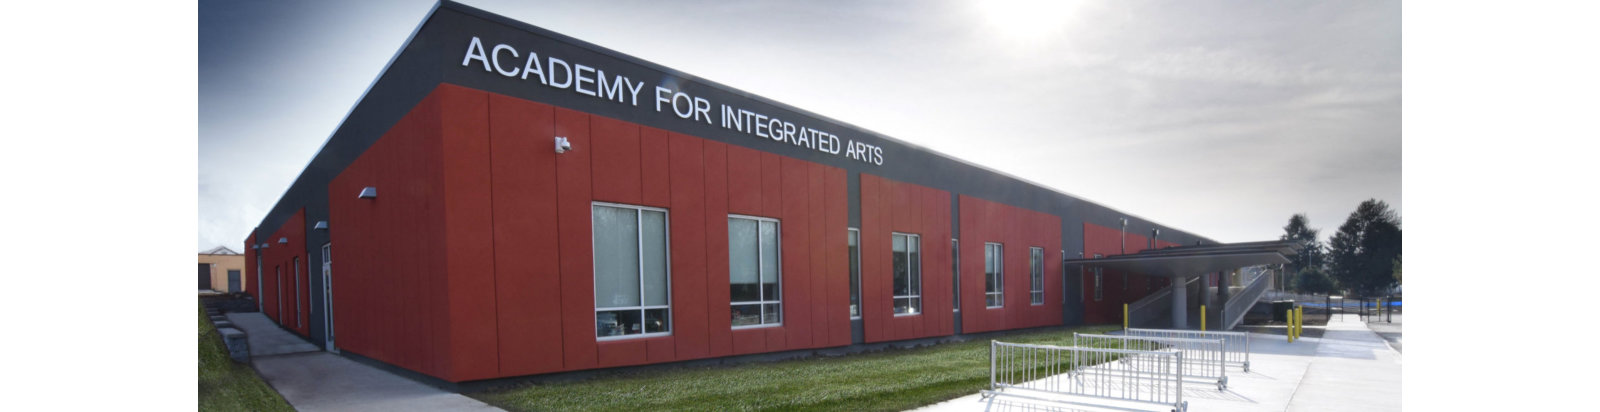 Academy for Integrated Arts 2017